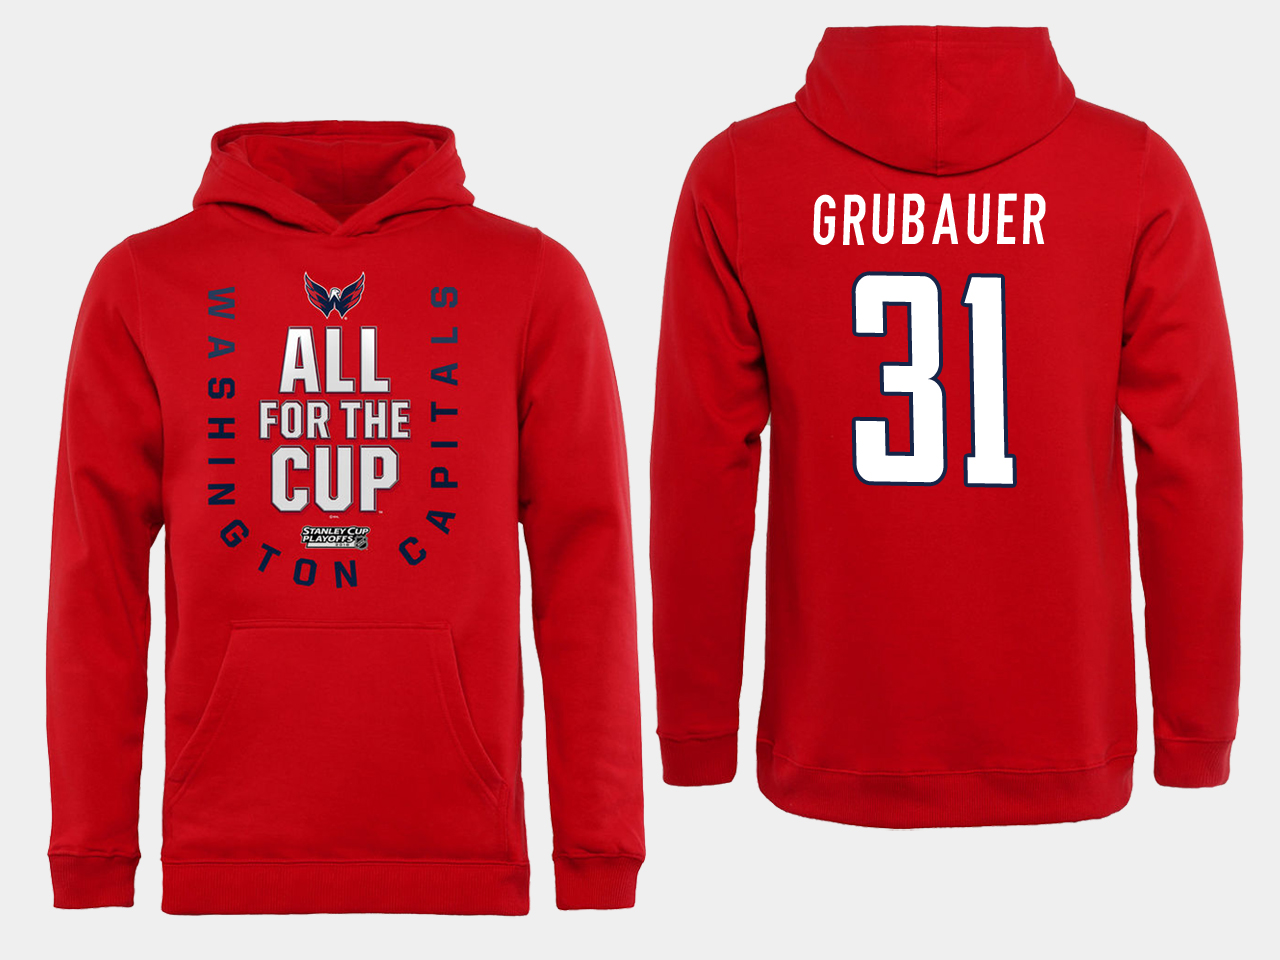 Men NHL Washington Capitals 31 grubauer Red All for the Cup Hoodie